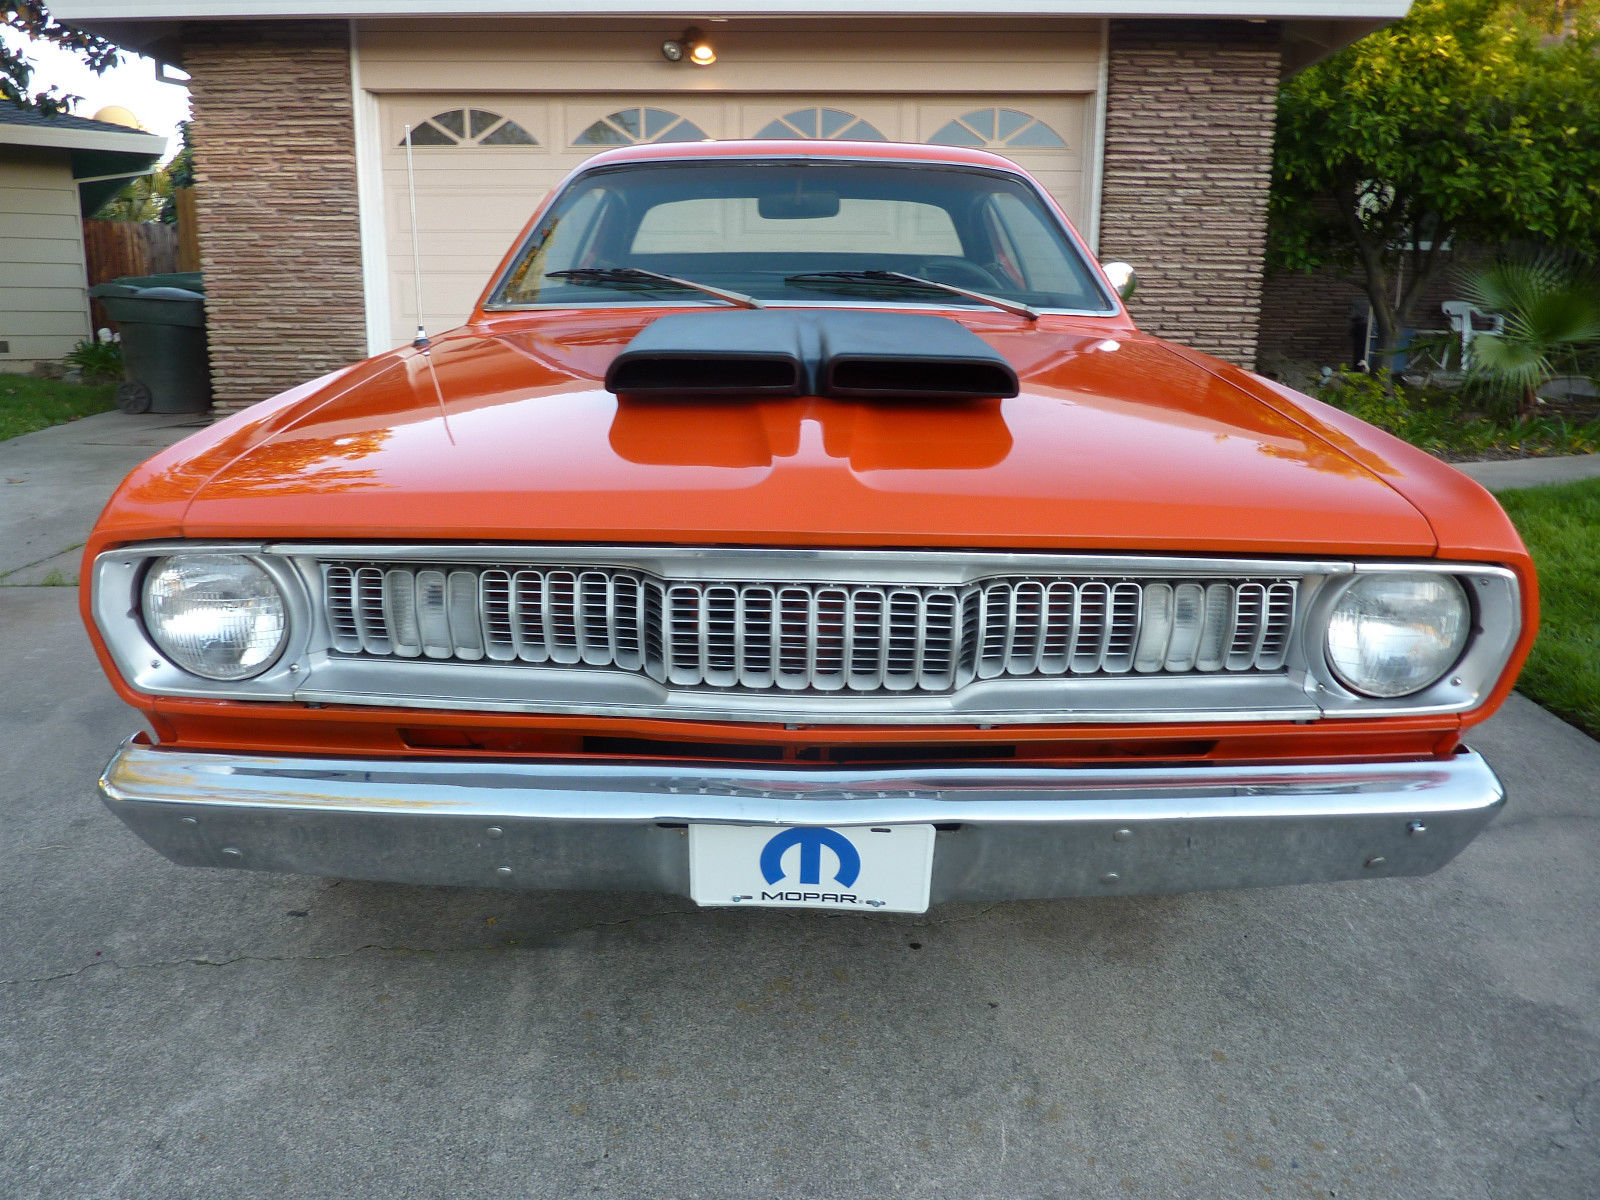 1971 Plymouth Duster Project Cars For Sale